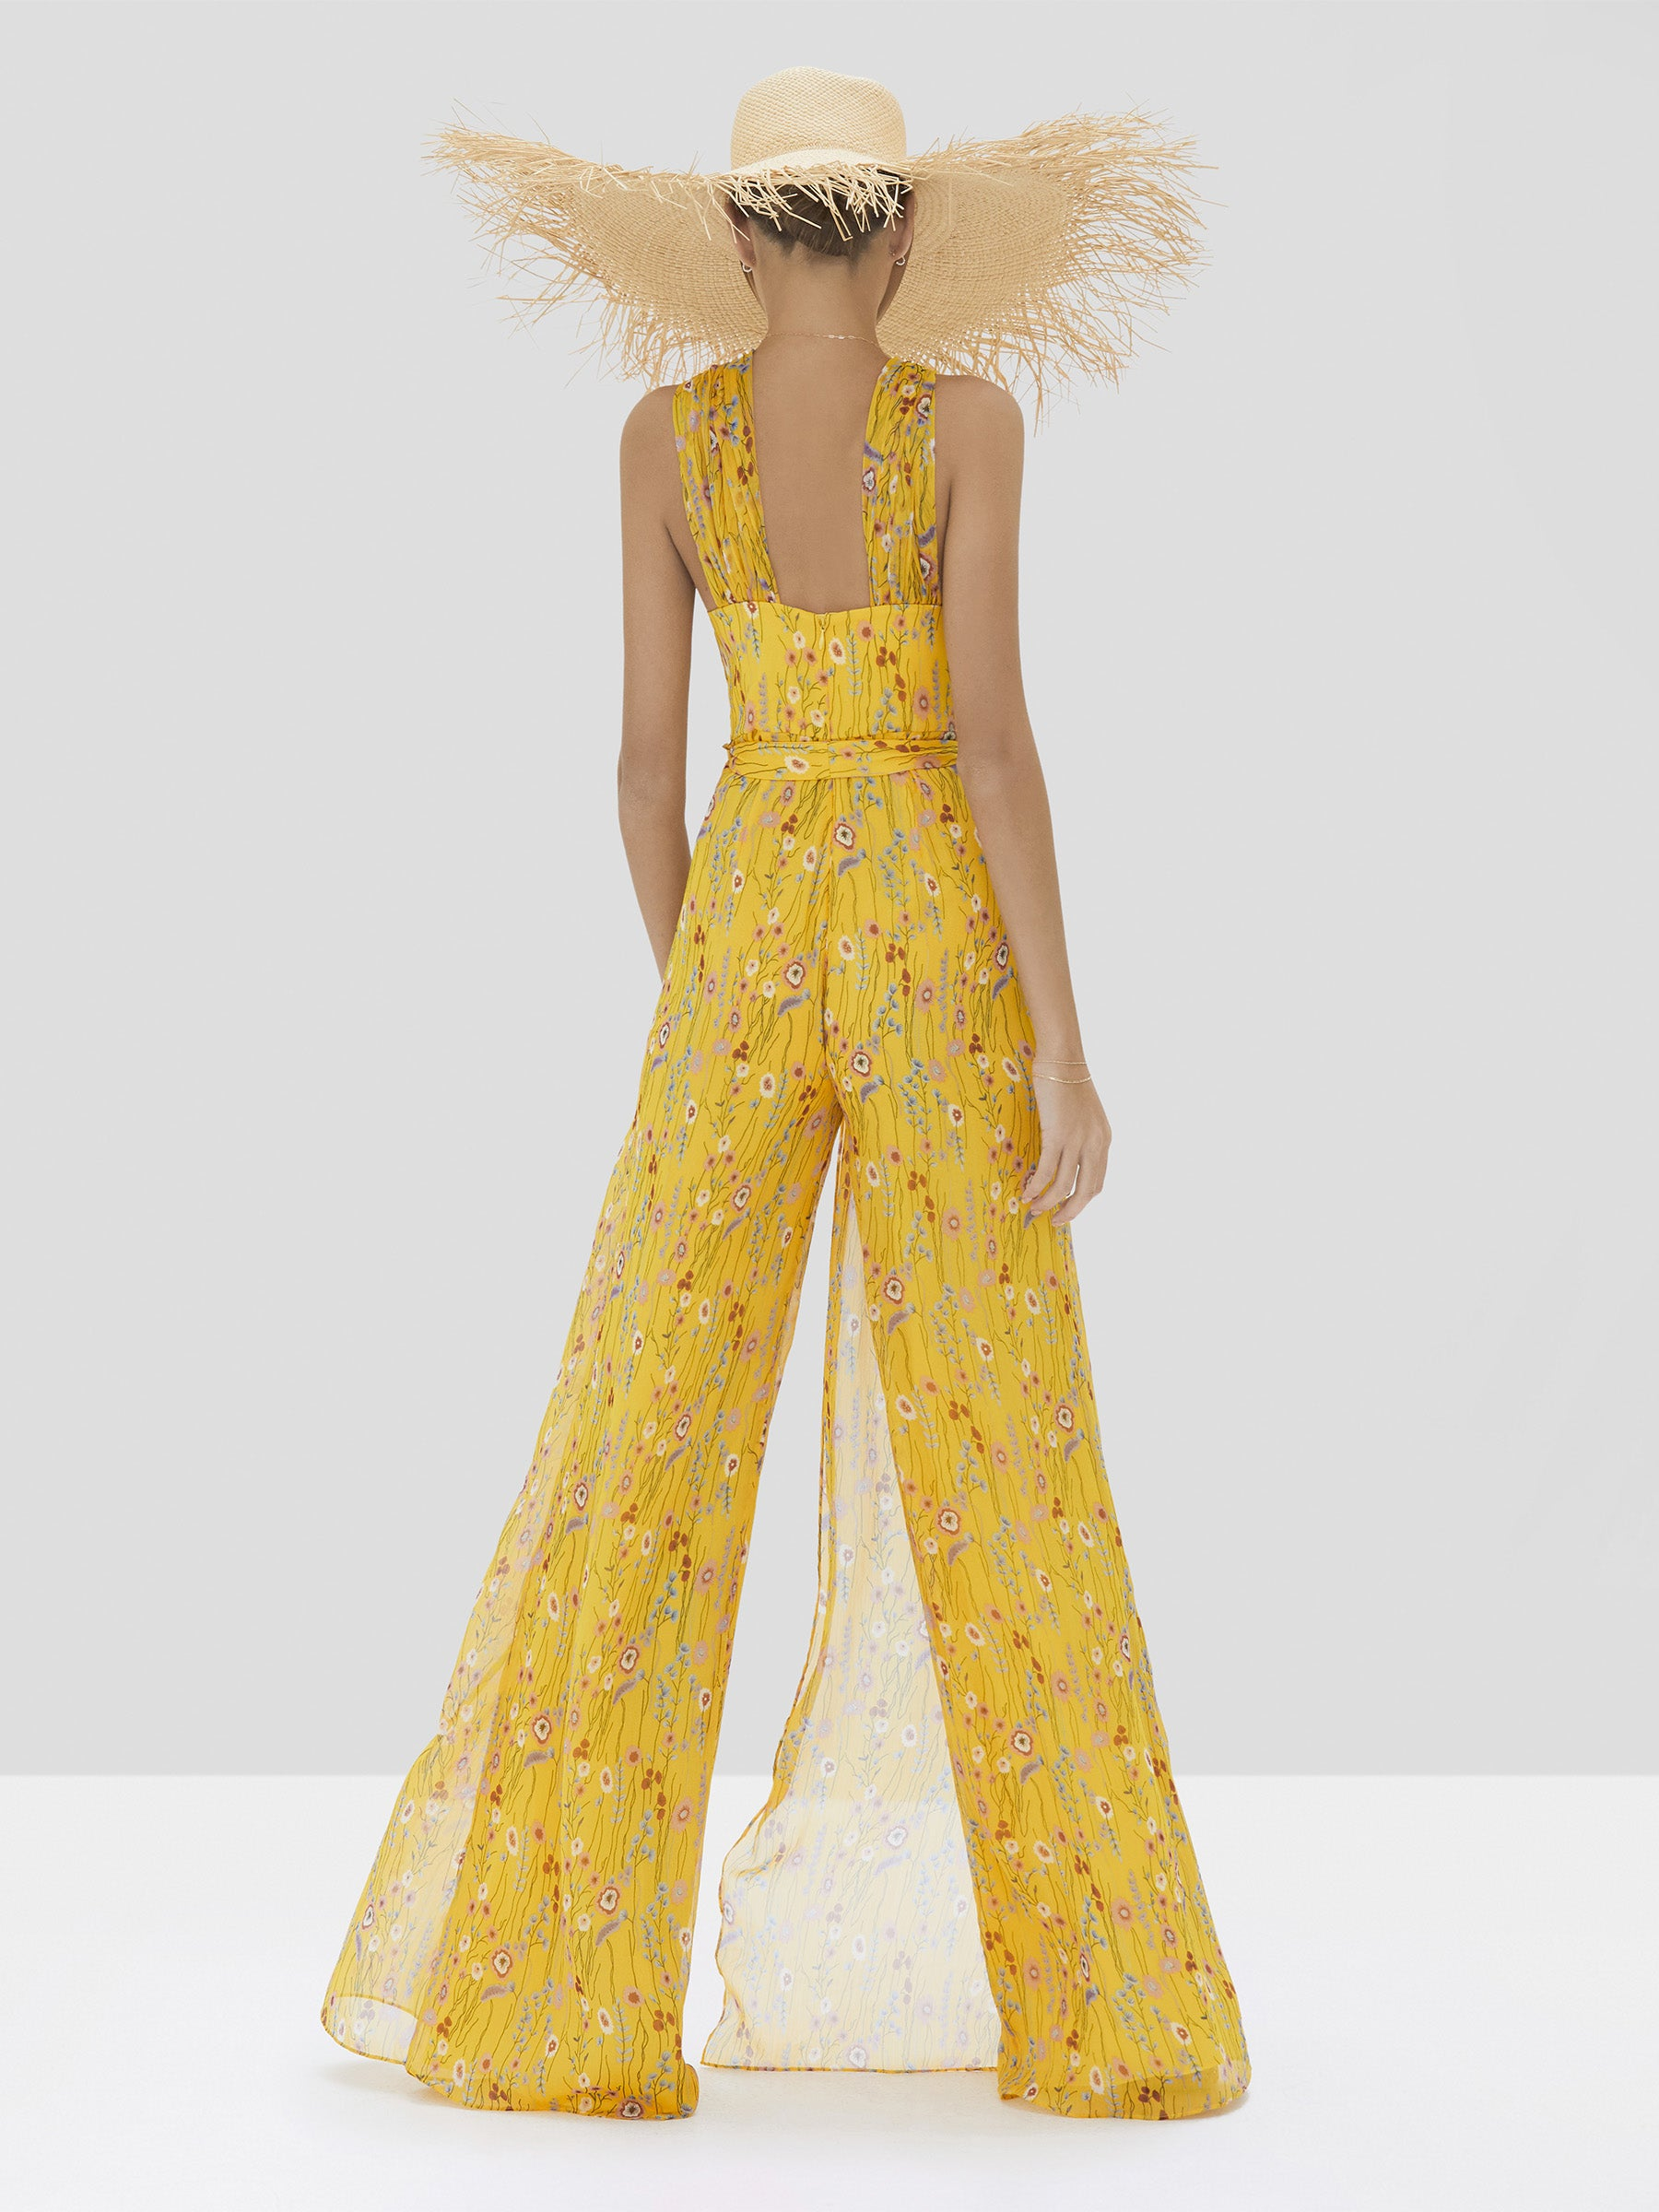 Alexis Janina Jumpsuit in Sunrise Bouquet from Spring Summer 2020 Collection - Rear View